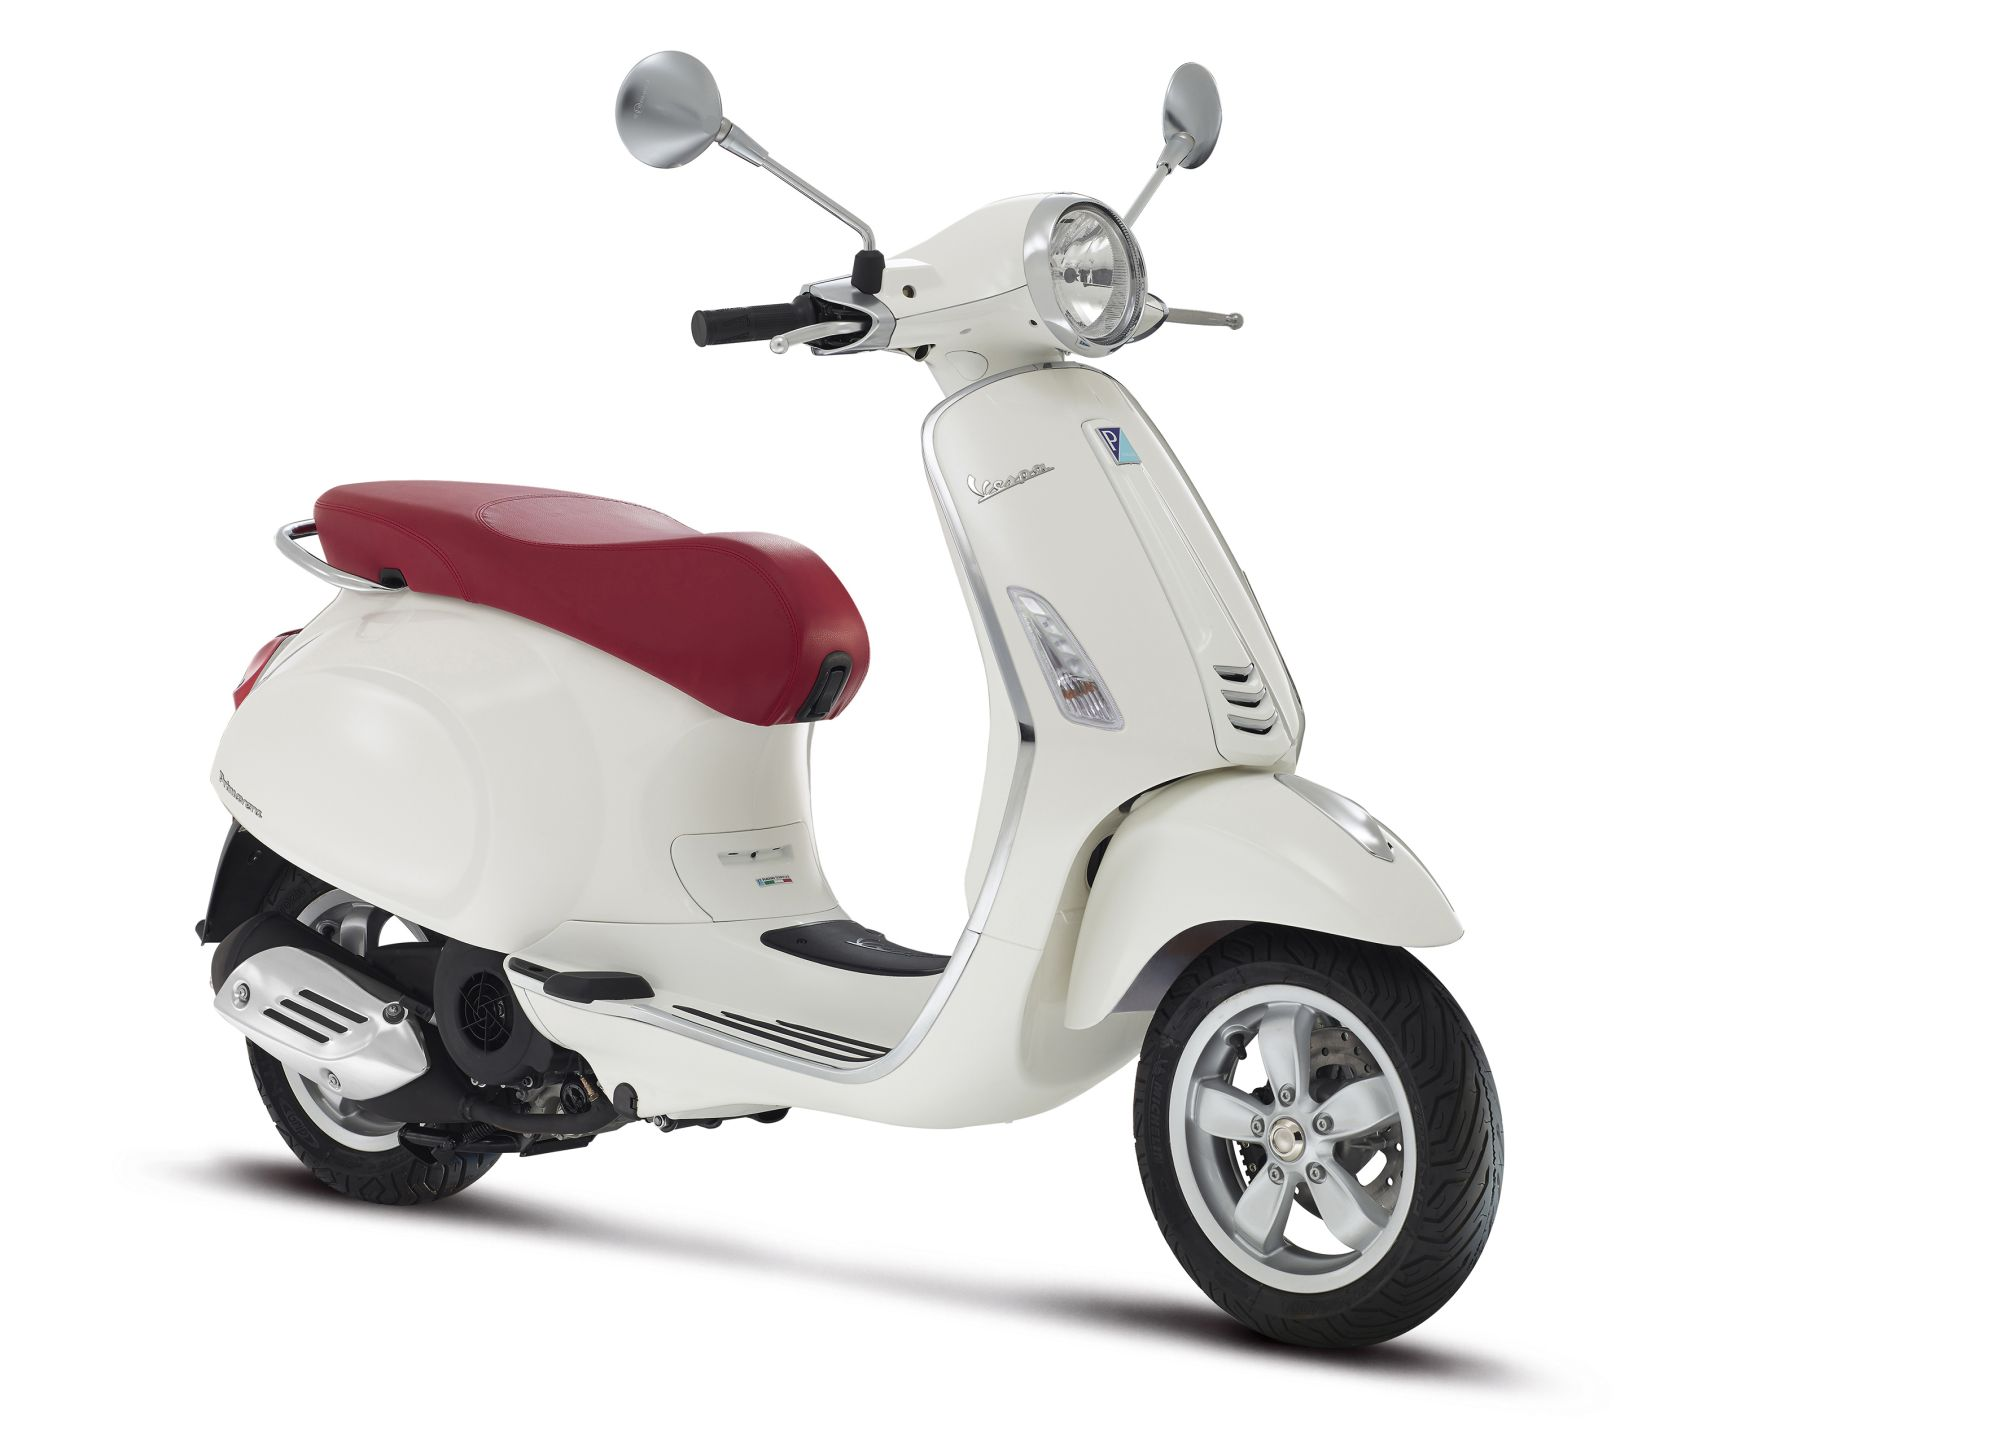 vespa primavera 50 2t all technical data of the model primavera 50 2t from vespa